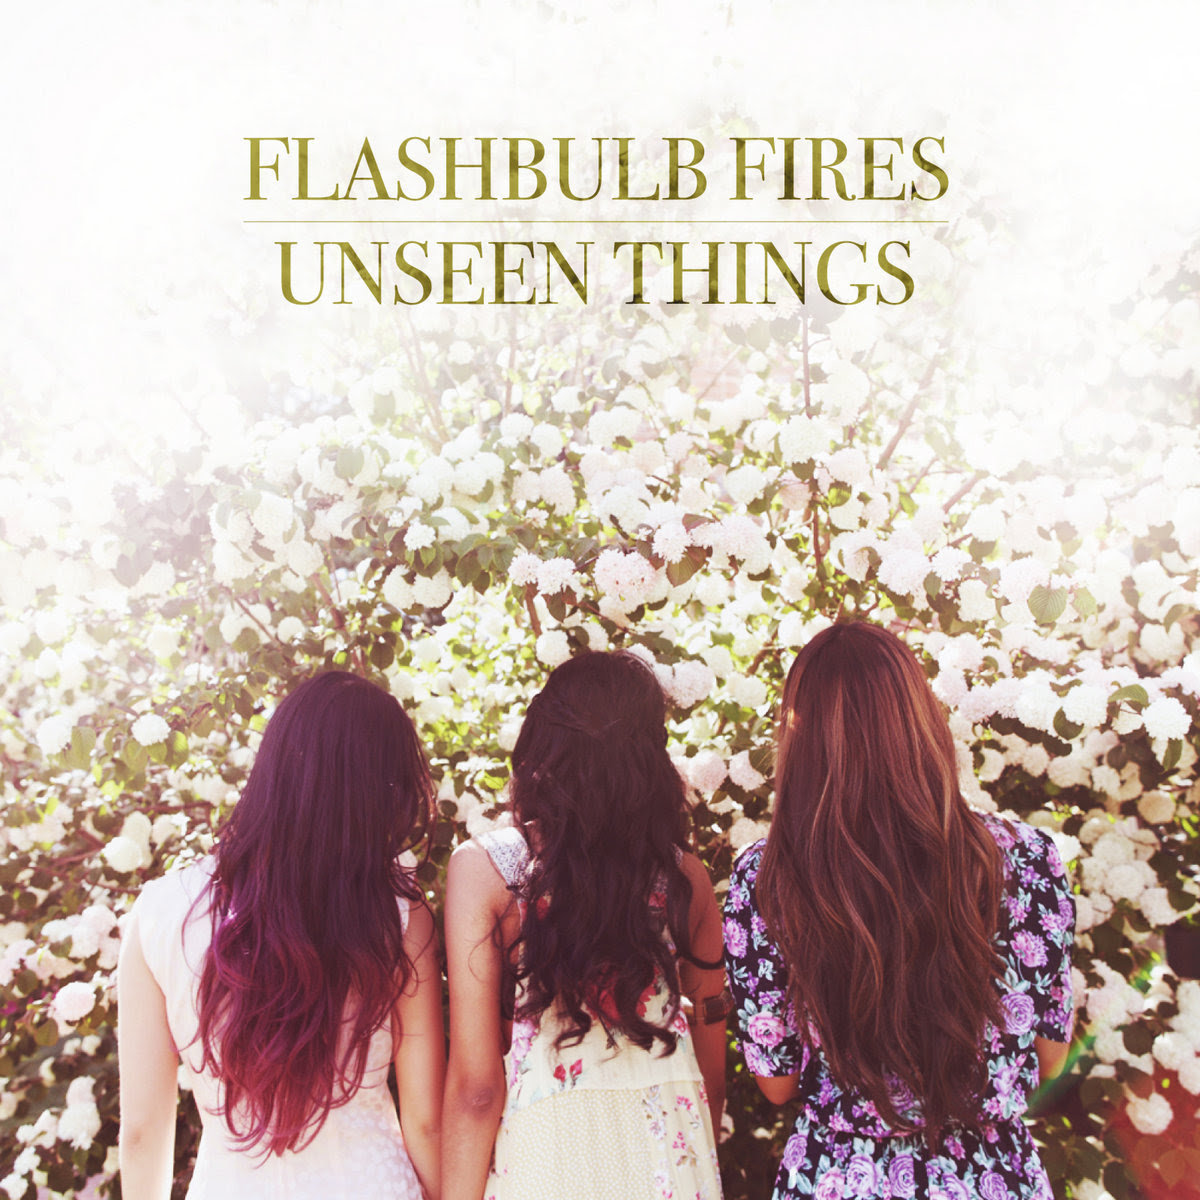 TRACK REVIEW: Unseen Things by Flashbulb Fires